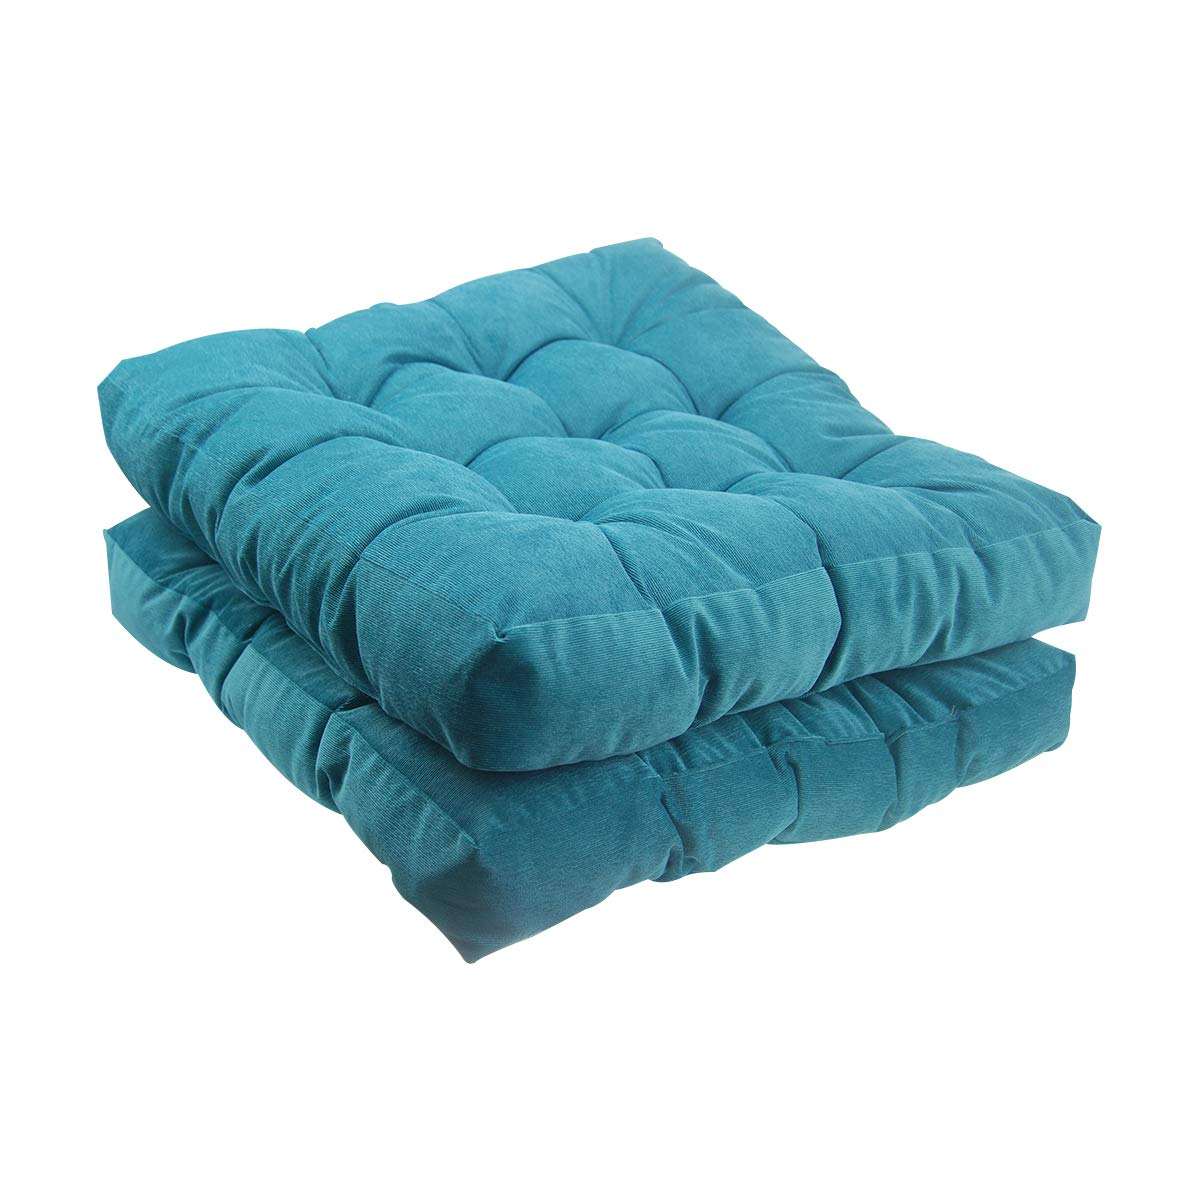 Tiita Solid Papasan Patio Seat Cushion Square Chair Pad Home Floor Cushion 22 Inch Set of 2 Throw Pillows Indoor Outdoor Blue